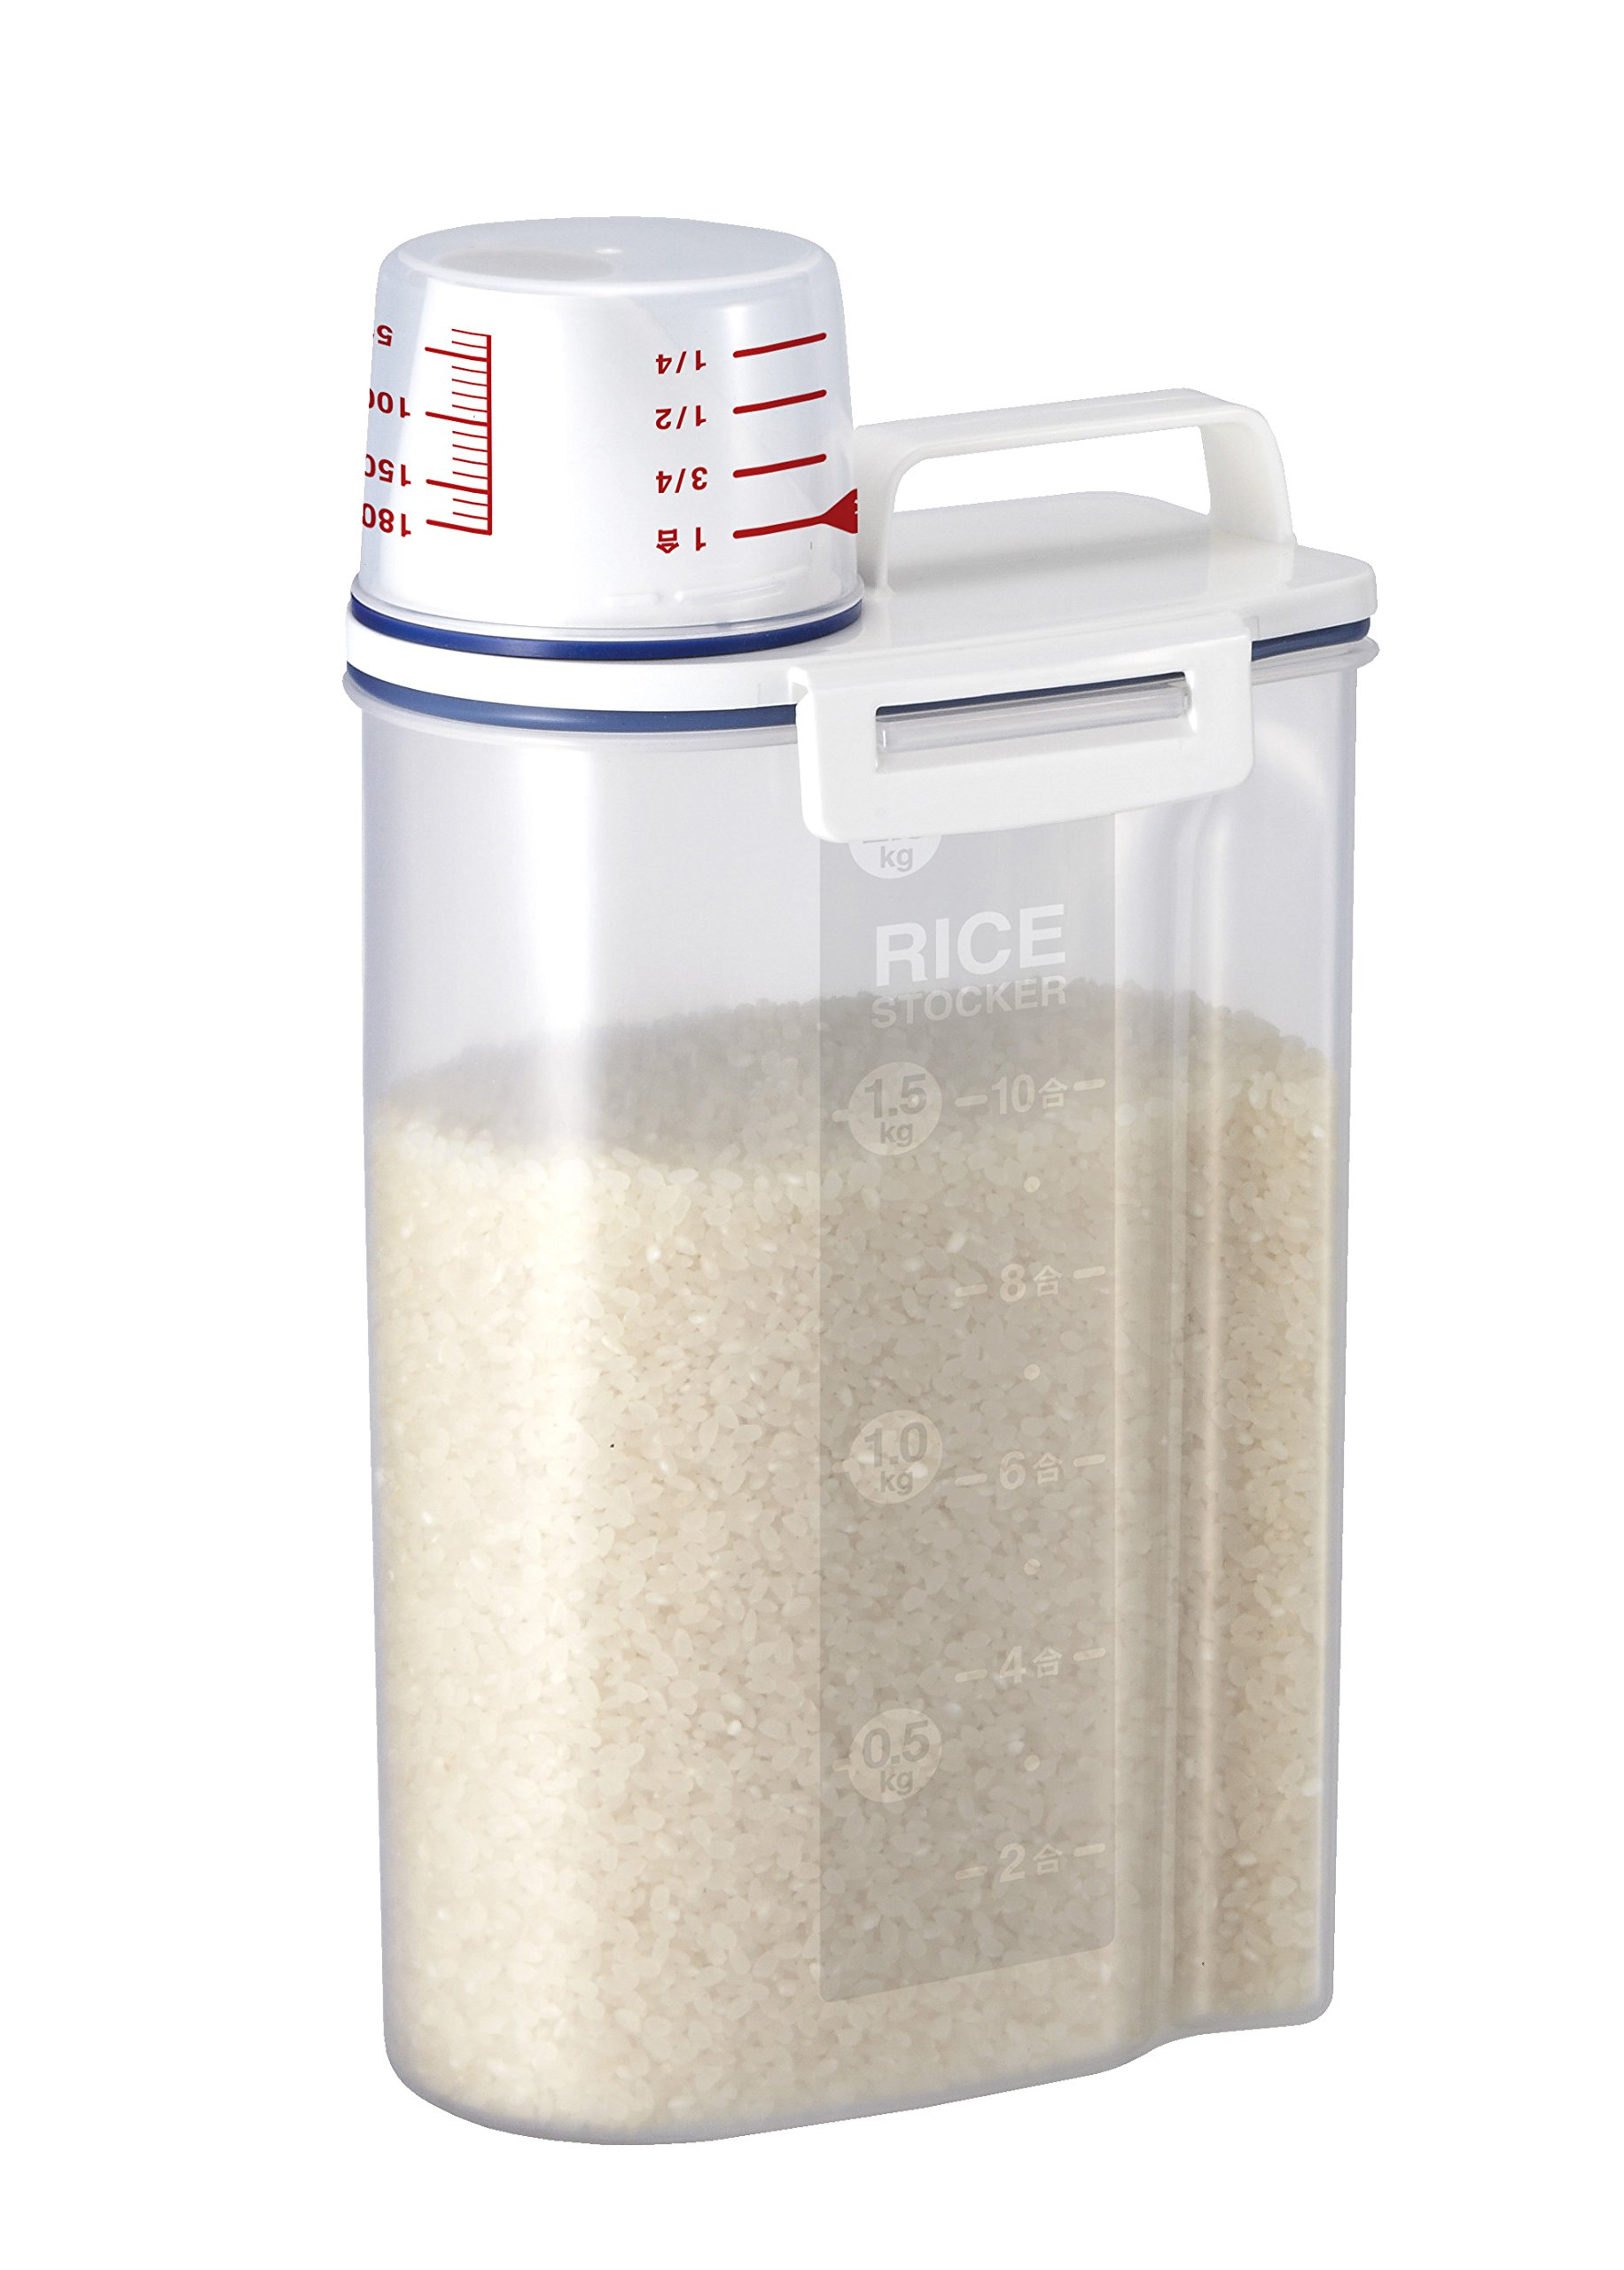 Rice Storage Bin with Pour Spout by Asvel 2kg by Asvel